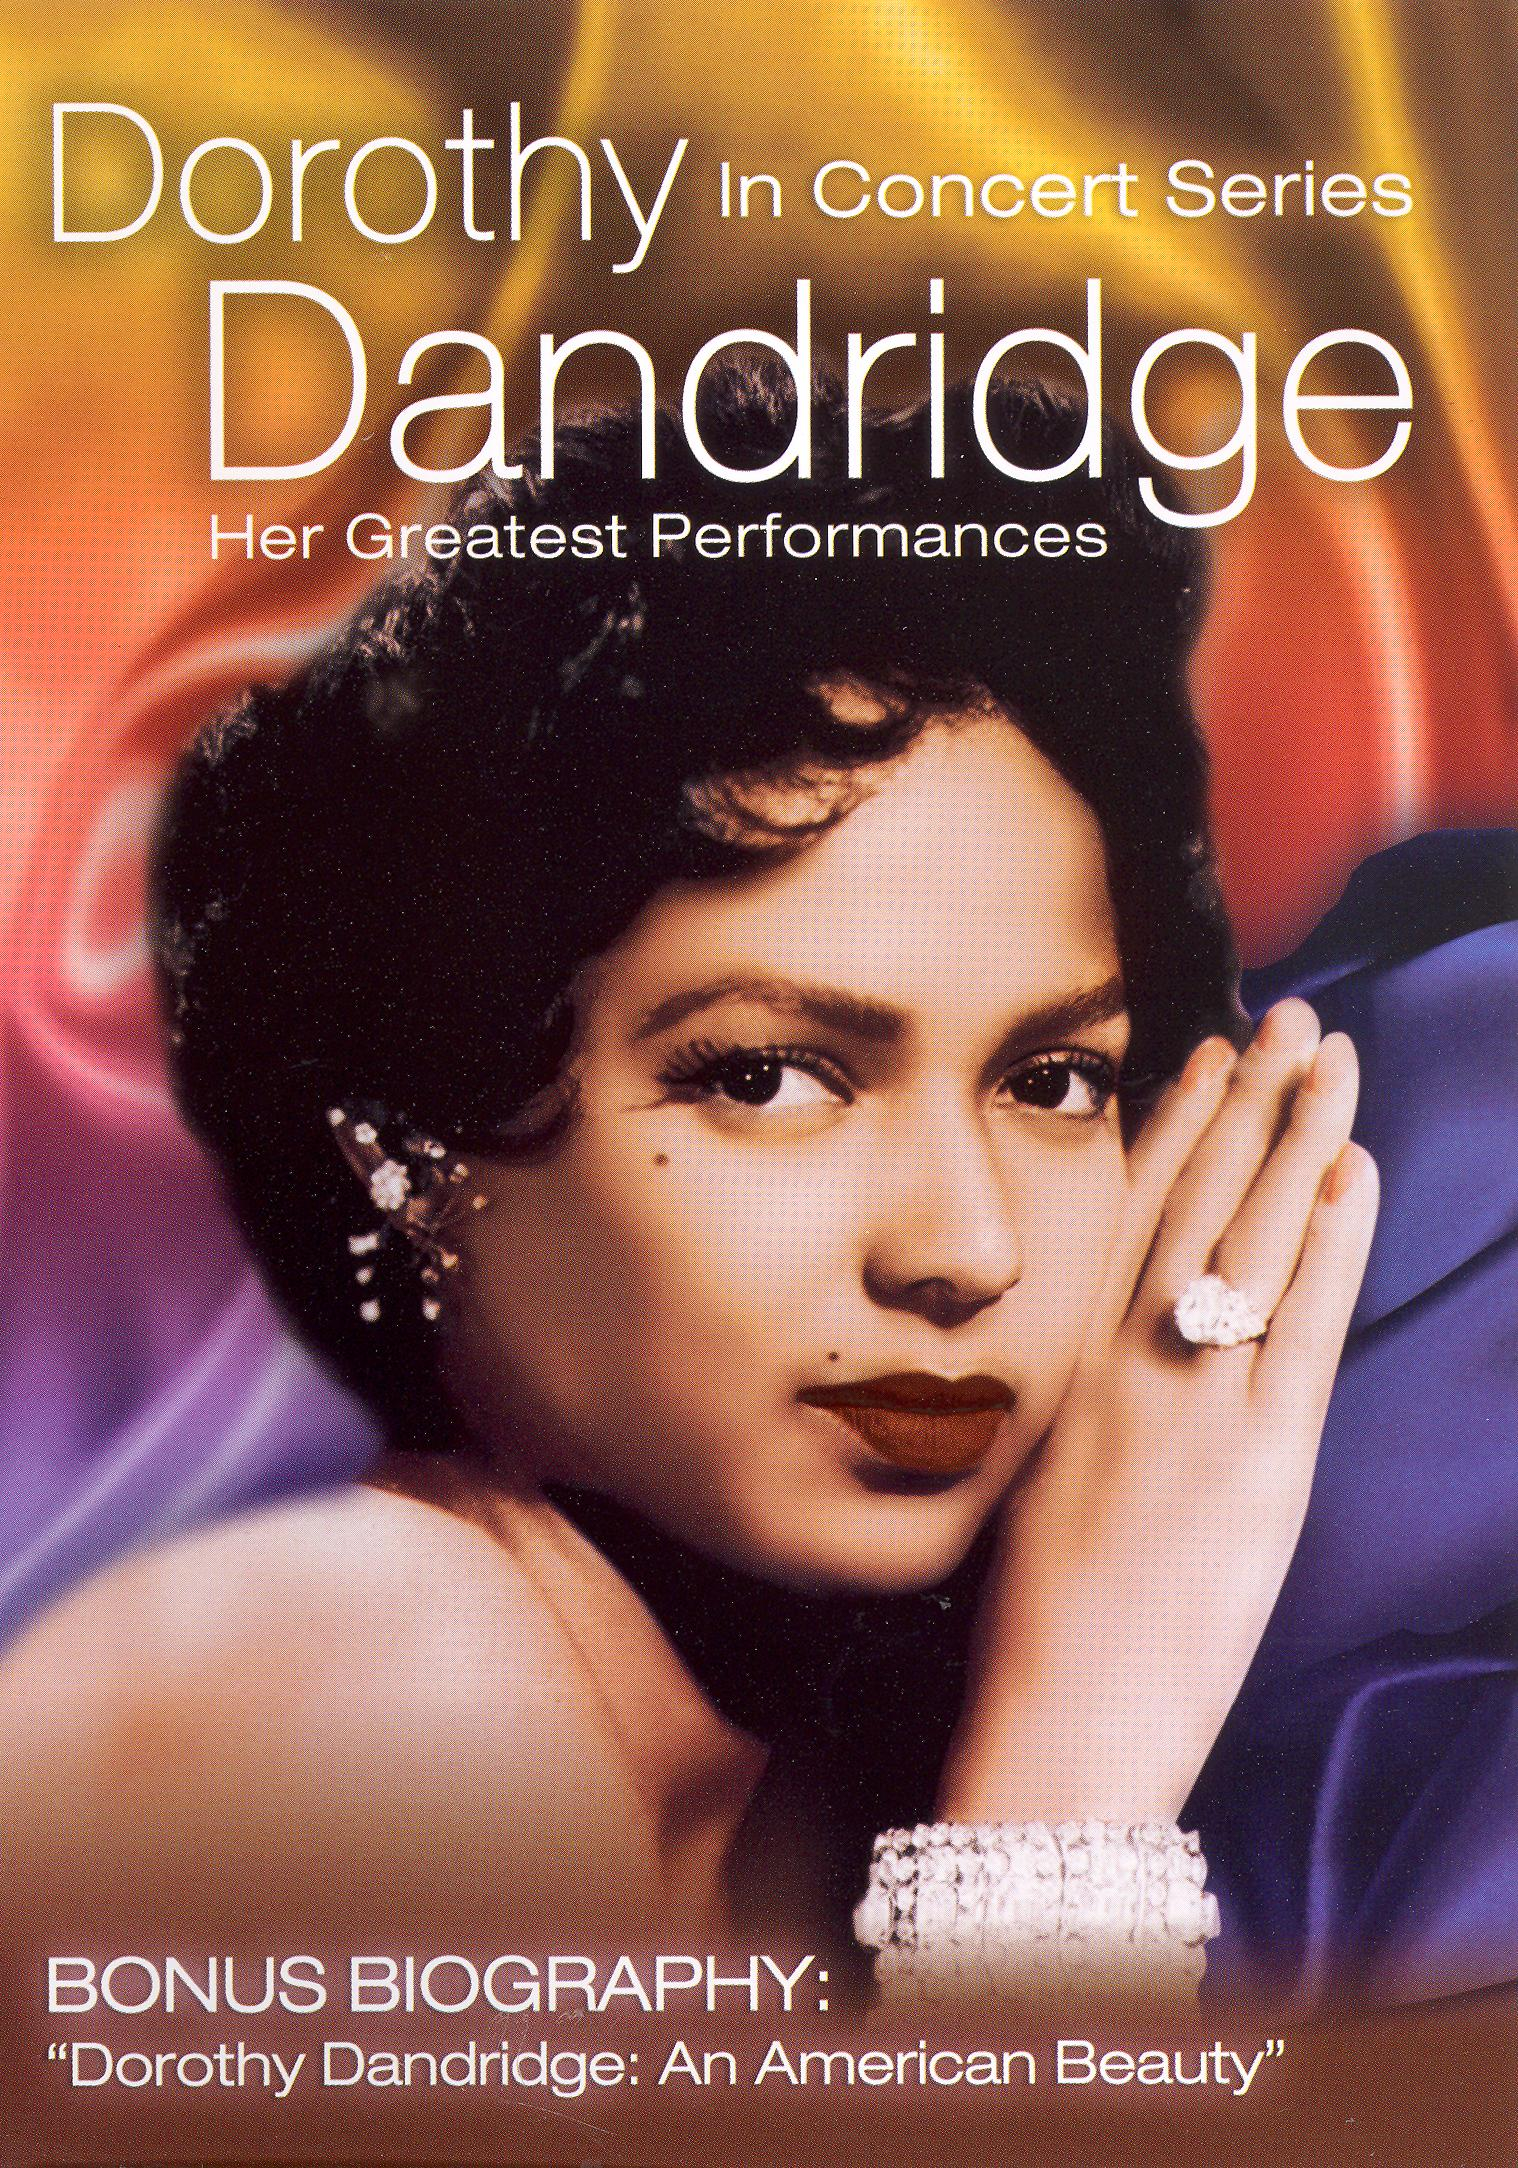 In Concert Series: Dorothy Dandridge